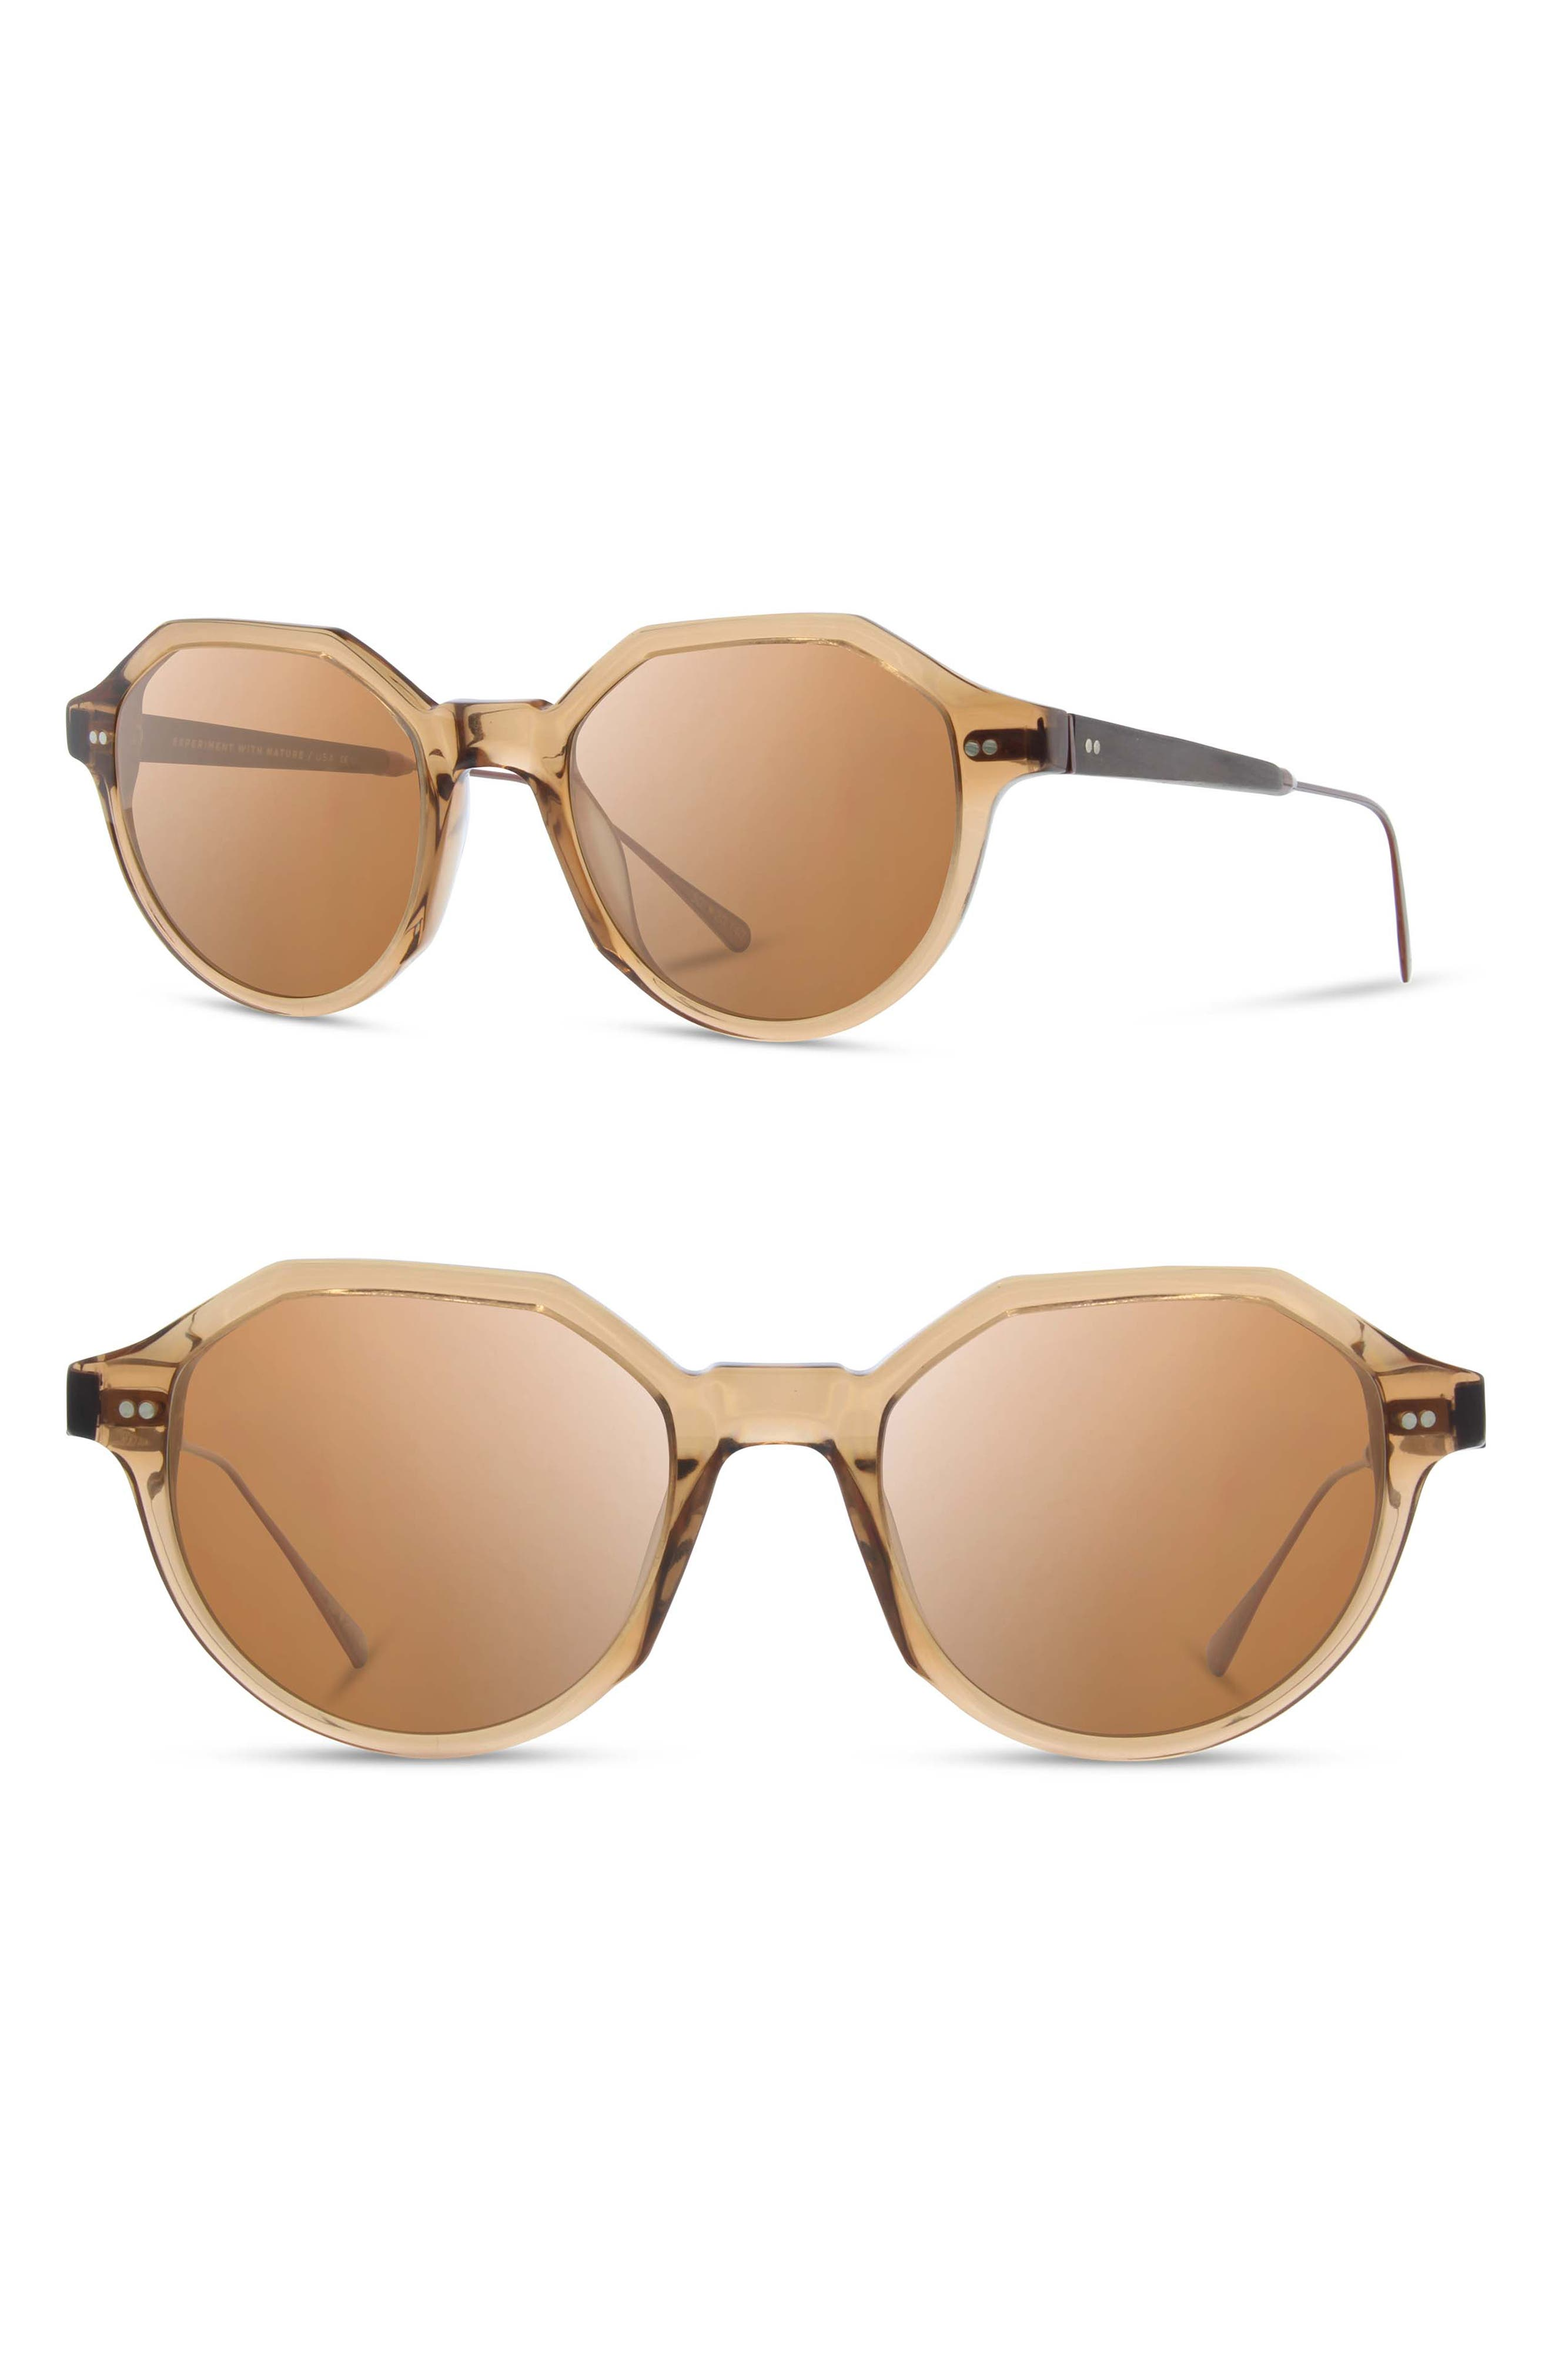 Shwood Powell 50Mm Polarized Geometric Sunglasses - Copper/ Ebony/ Brown